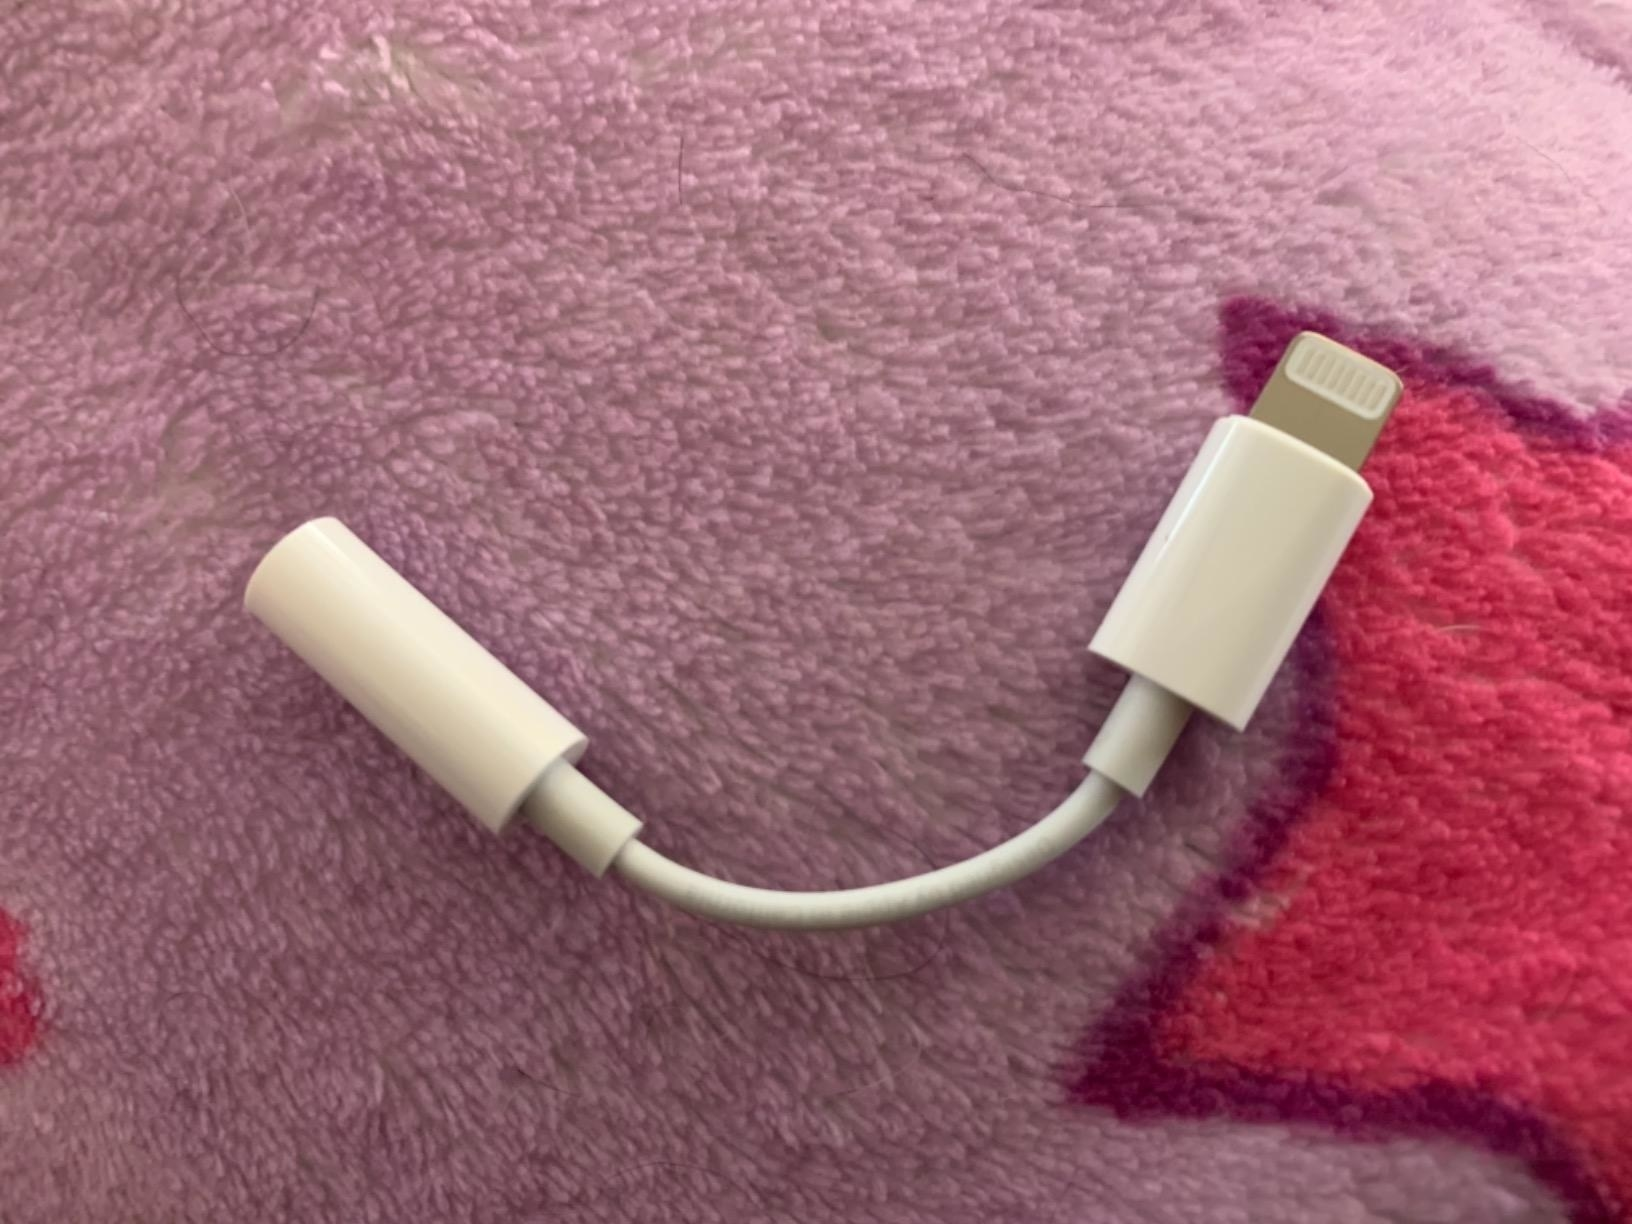 the adapter on a purple background